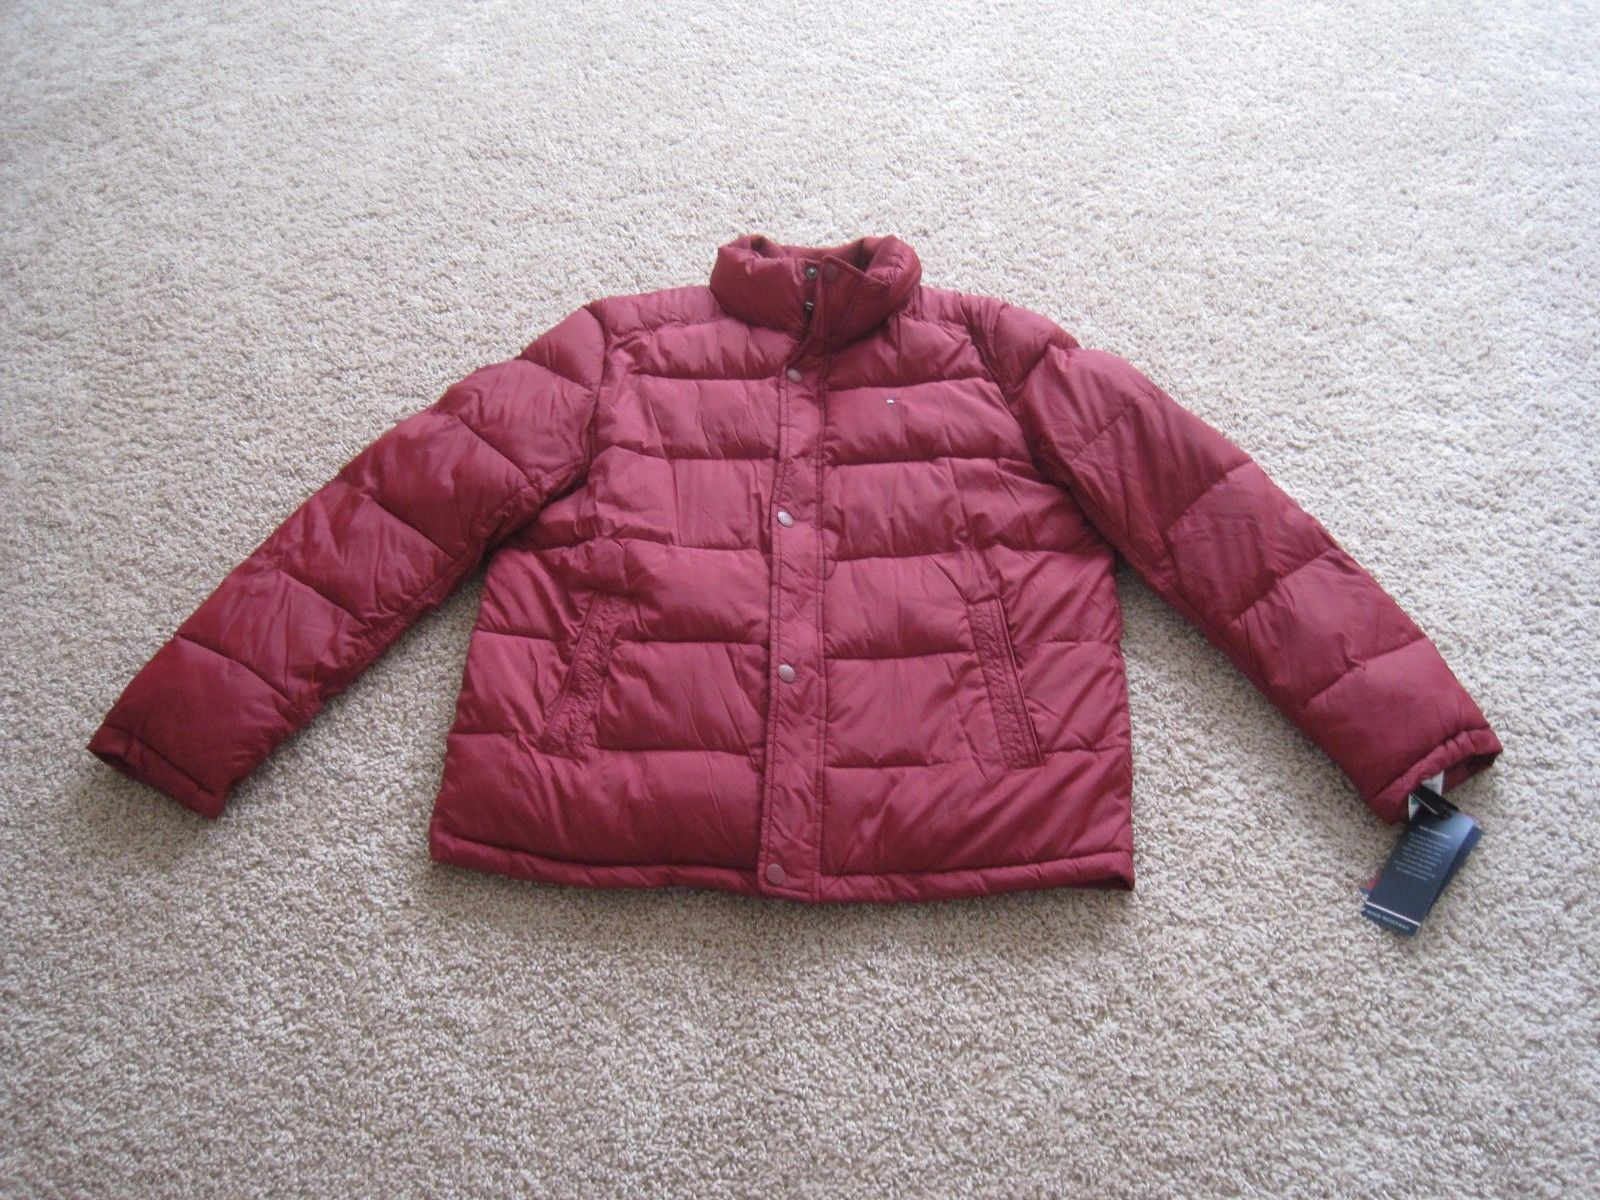 BNWT Tommy Hilfiger Mens Puffer Jacket, L, Red, Wind resistant, Super warm, $195